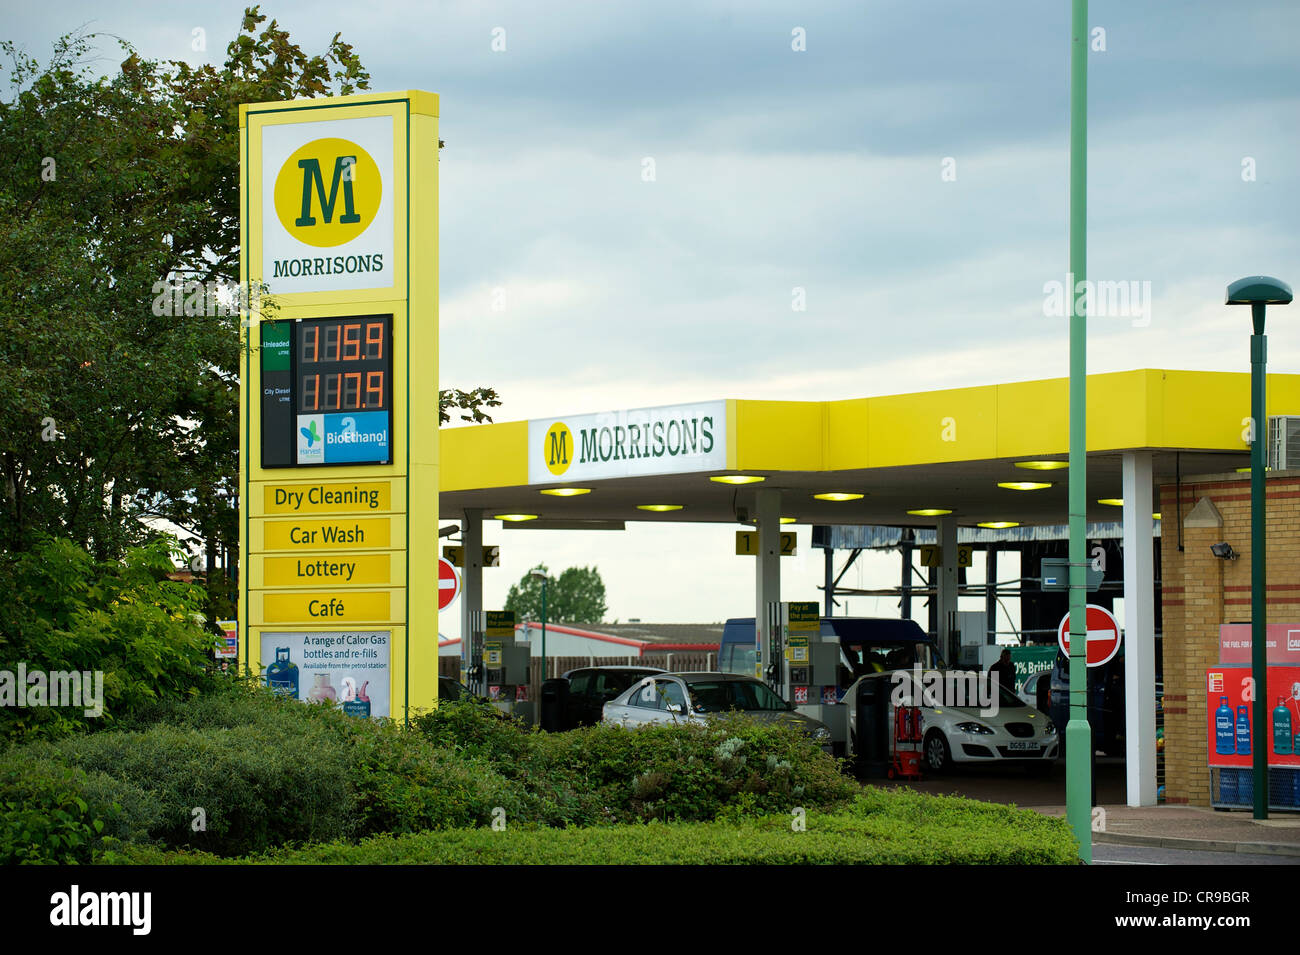 Morrisons Fuel Cards For Small Business Images - Free Business Cards